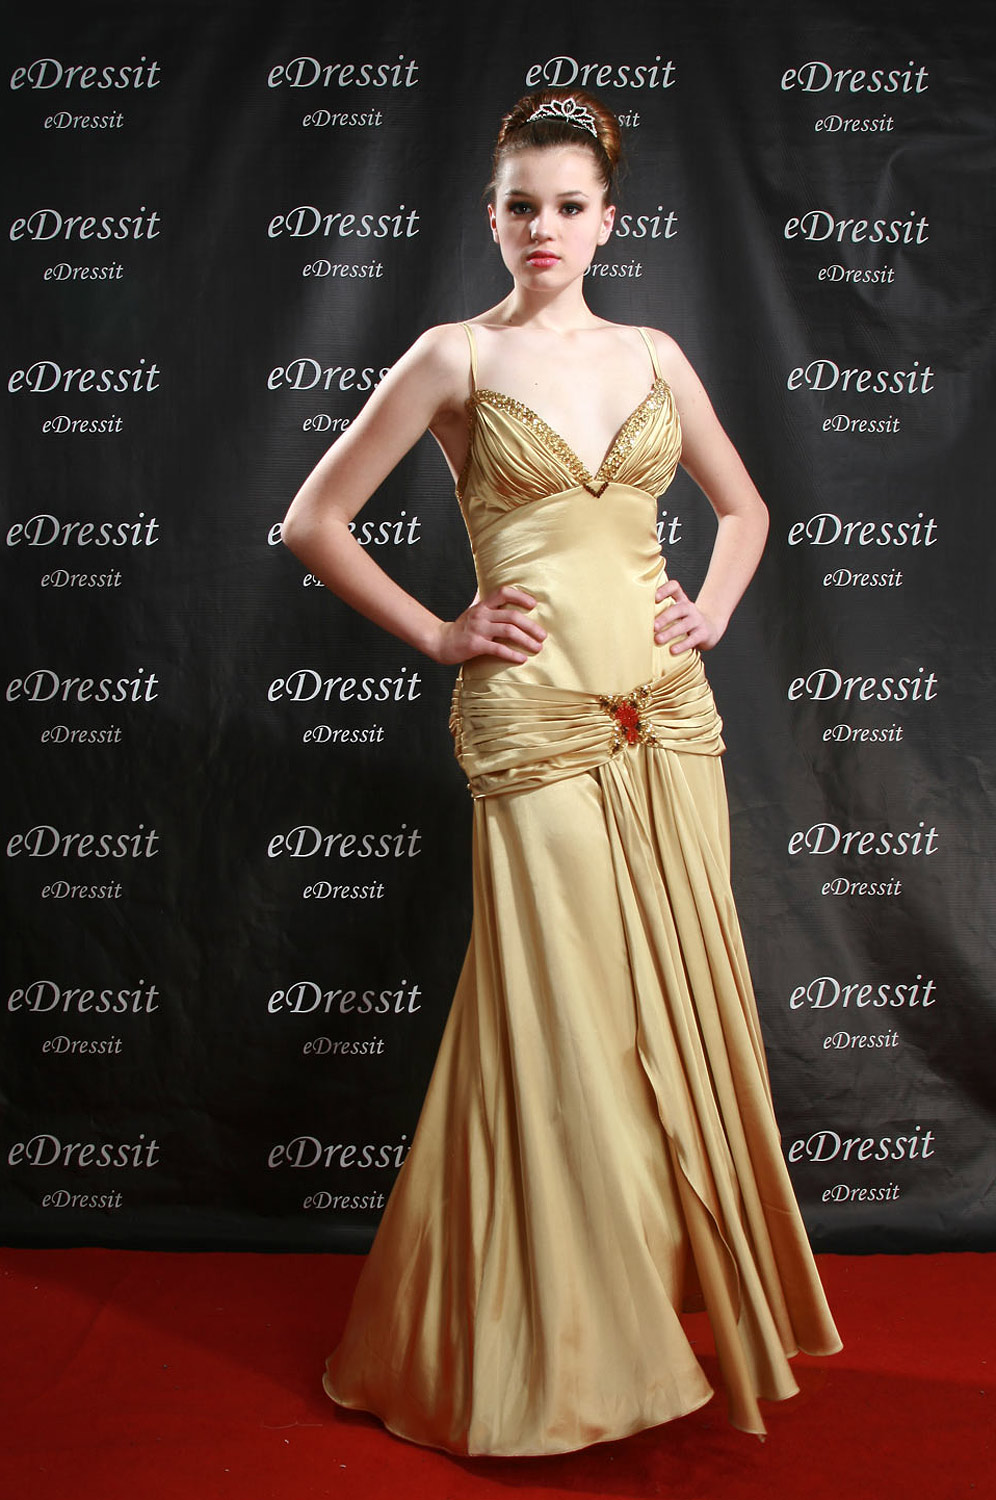 eDressit SEXY ROBE DE SOIREE/MARIEE/EVENING DRESS (00774903)